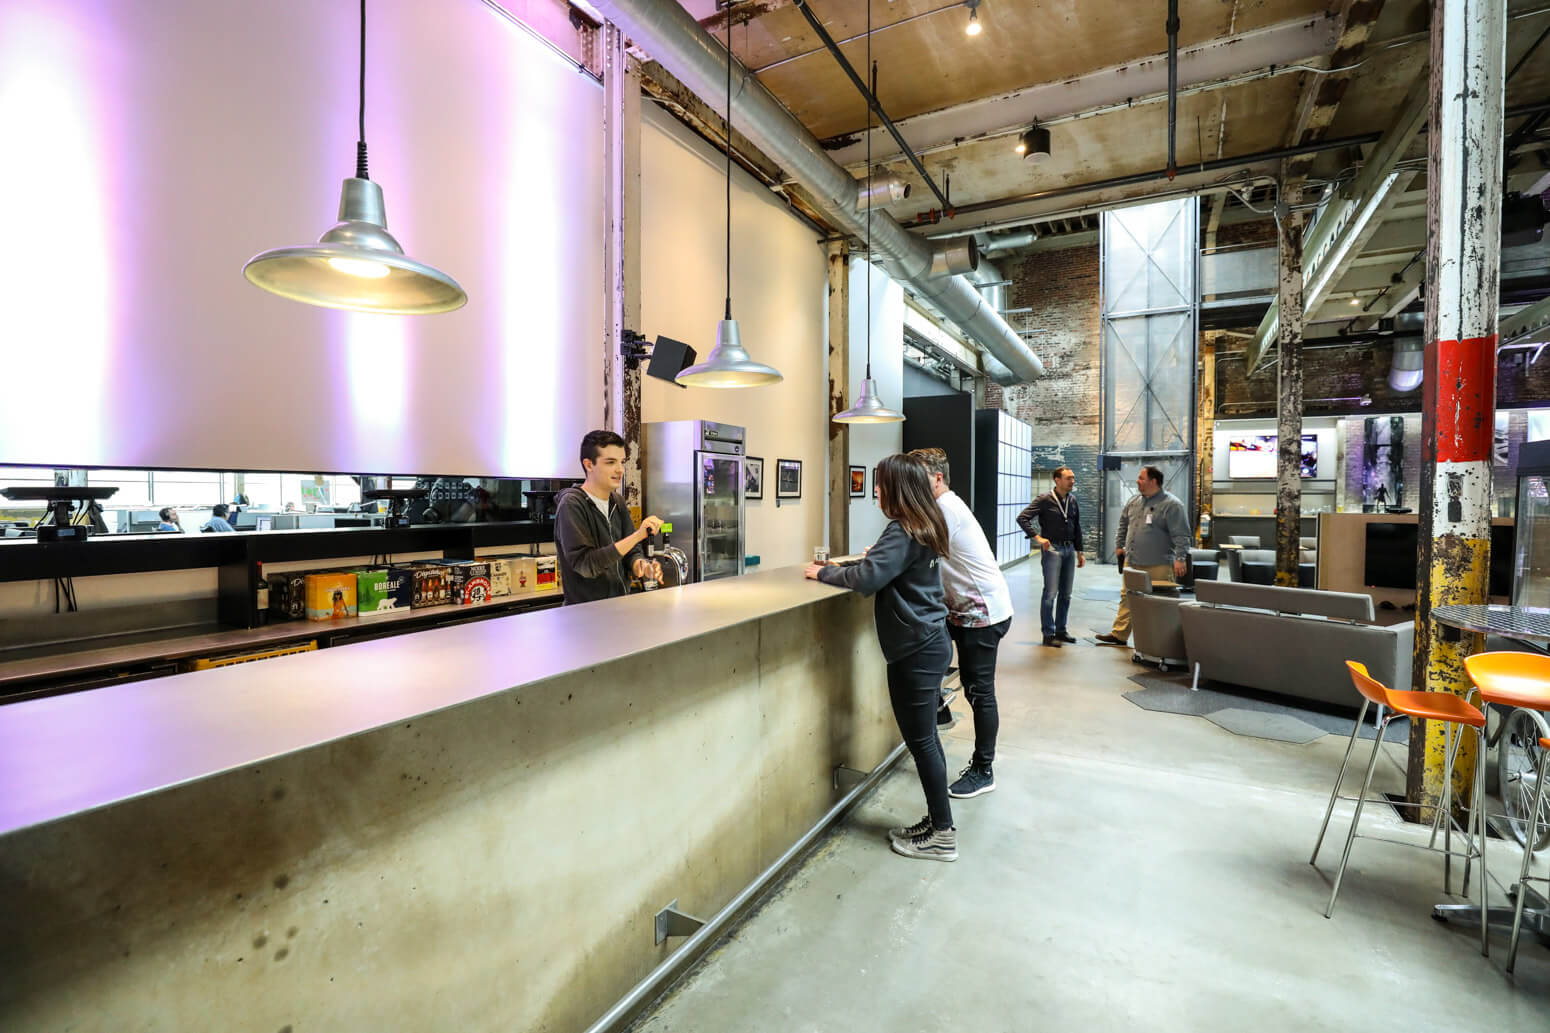 Autodesk Montreal Office Killer Spaces-16